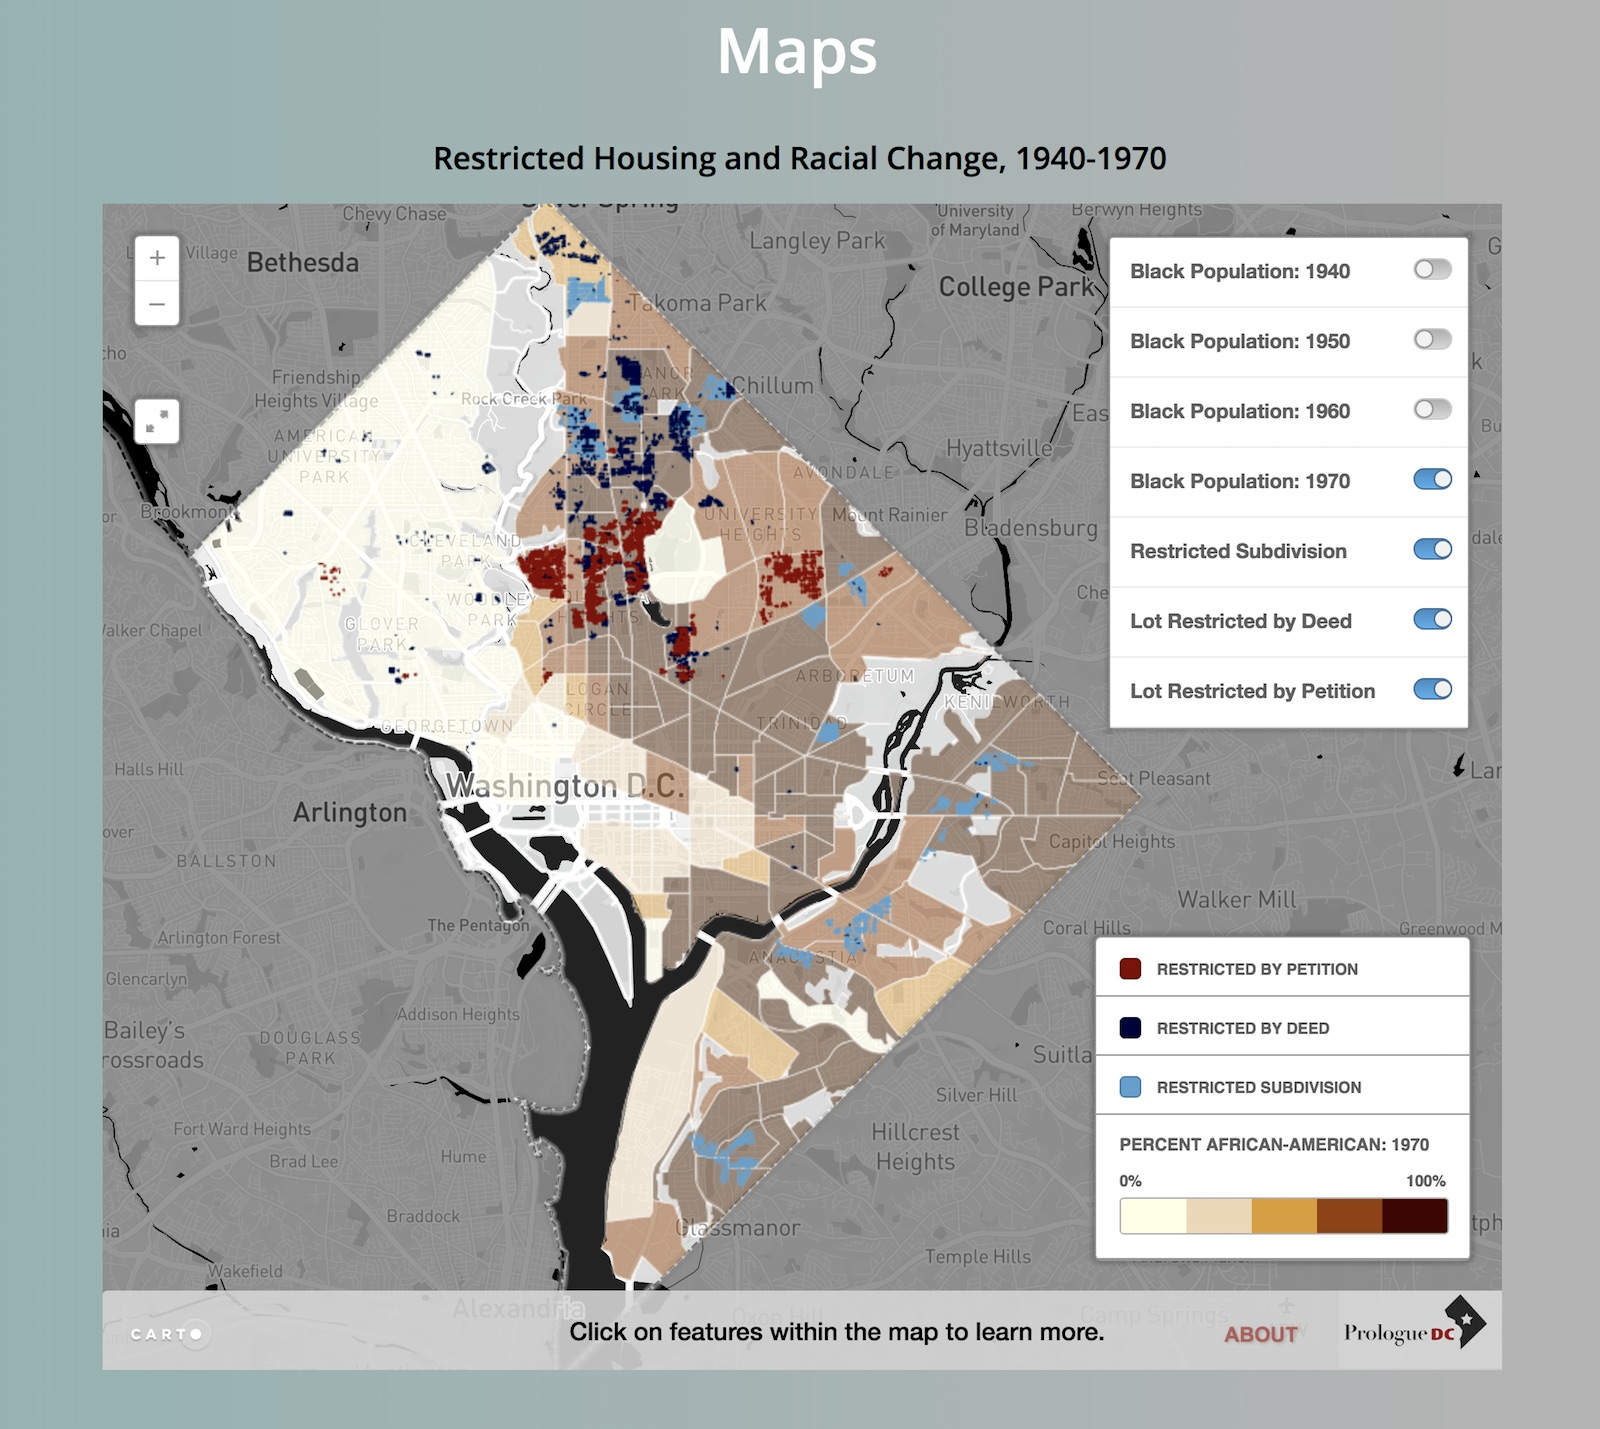 Se Dc Map.New Website Maps Out History Of Housing Segregation In Dc